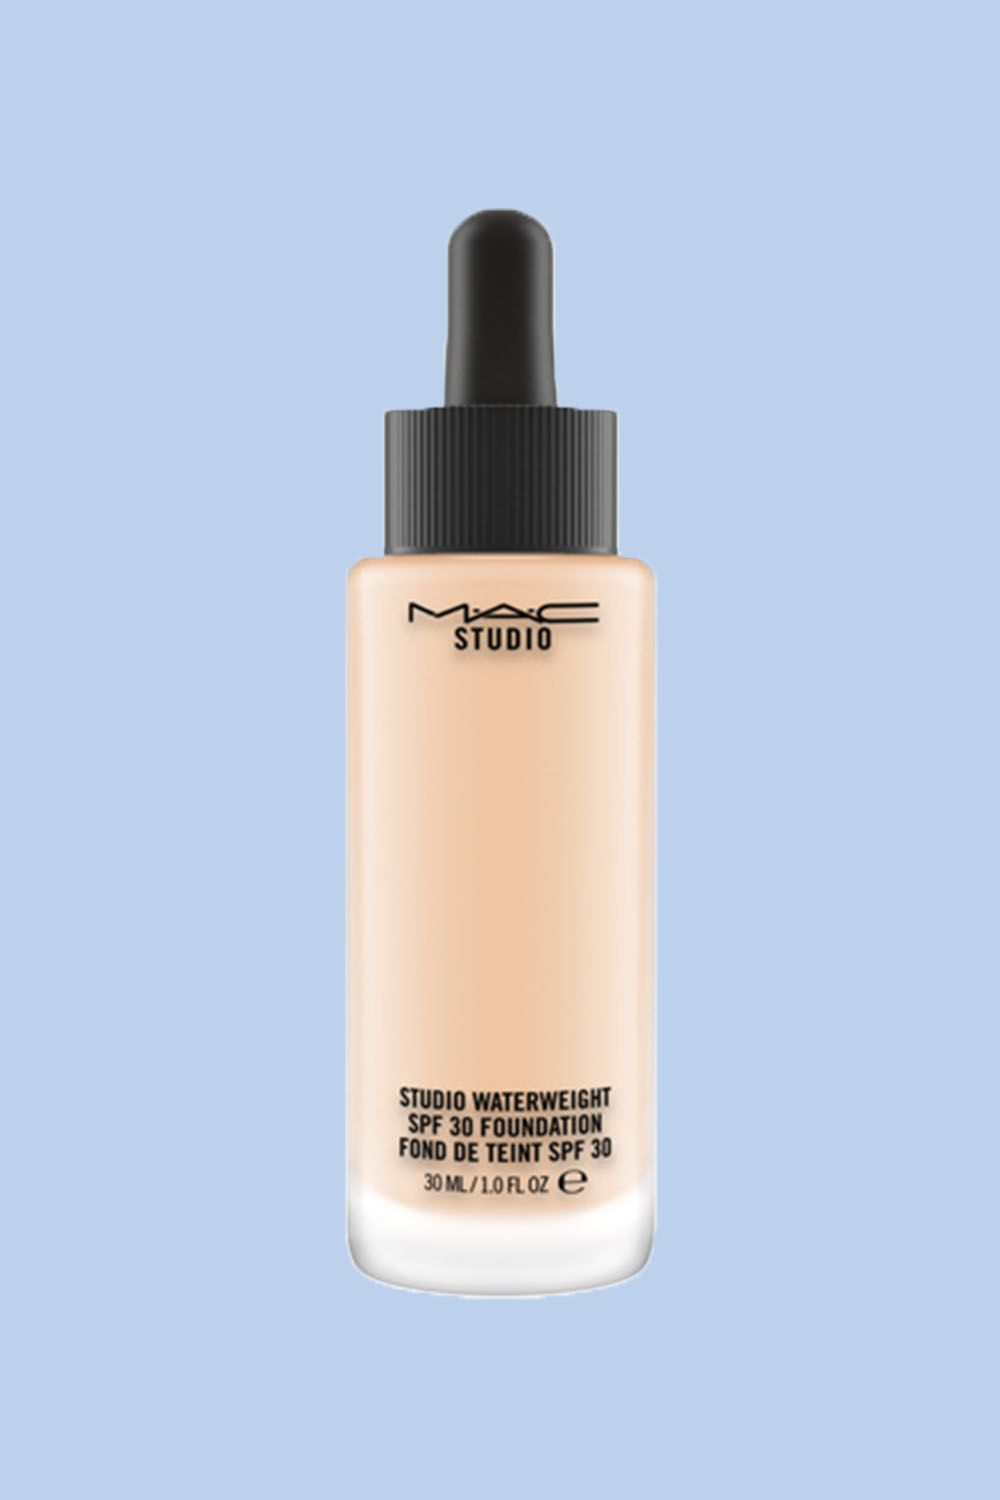 "<p>This water-based, gel-serum foundation will feel like heaven on dry skin while delivering F-L-A-W-L-E-S-S coverage. The kicker? It also boasts SPF 30 sun protection AKA will keep you looking younger longer.</p><p><br></p><p>MAC Studio Waterweight SPF 30 Foundation, $33&#x3B; <a href=""http://bit.ly/1RYIZlz"" target=""_blank"">macys.com</a>.</p>"